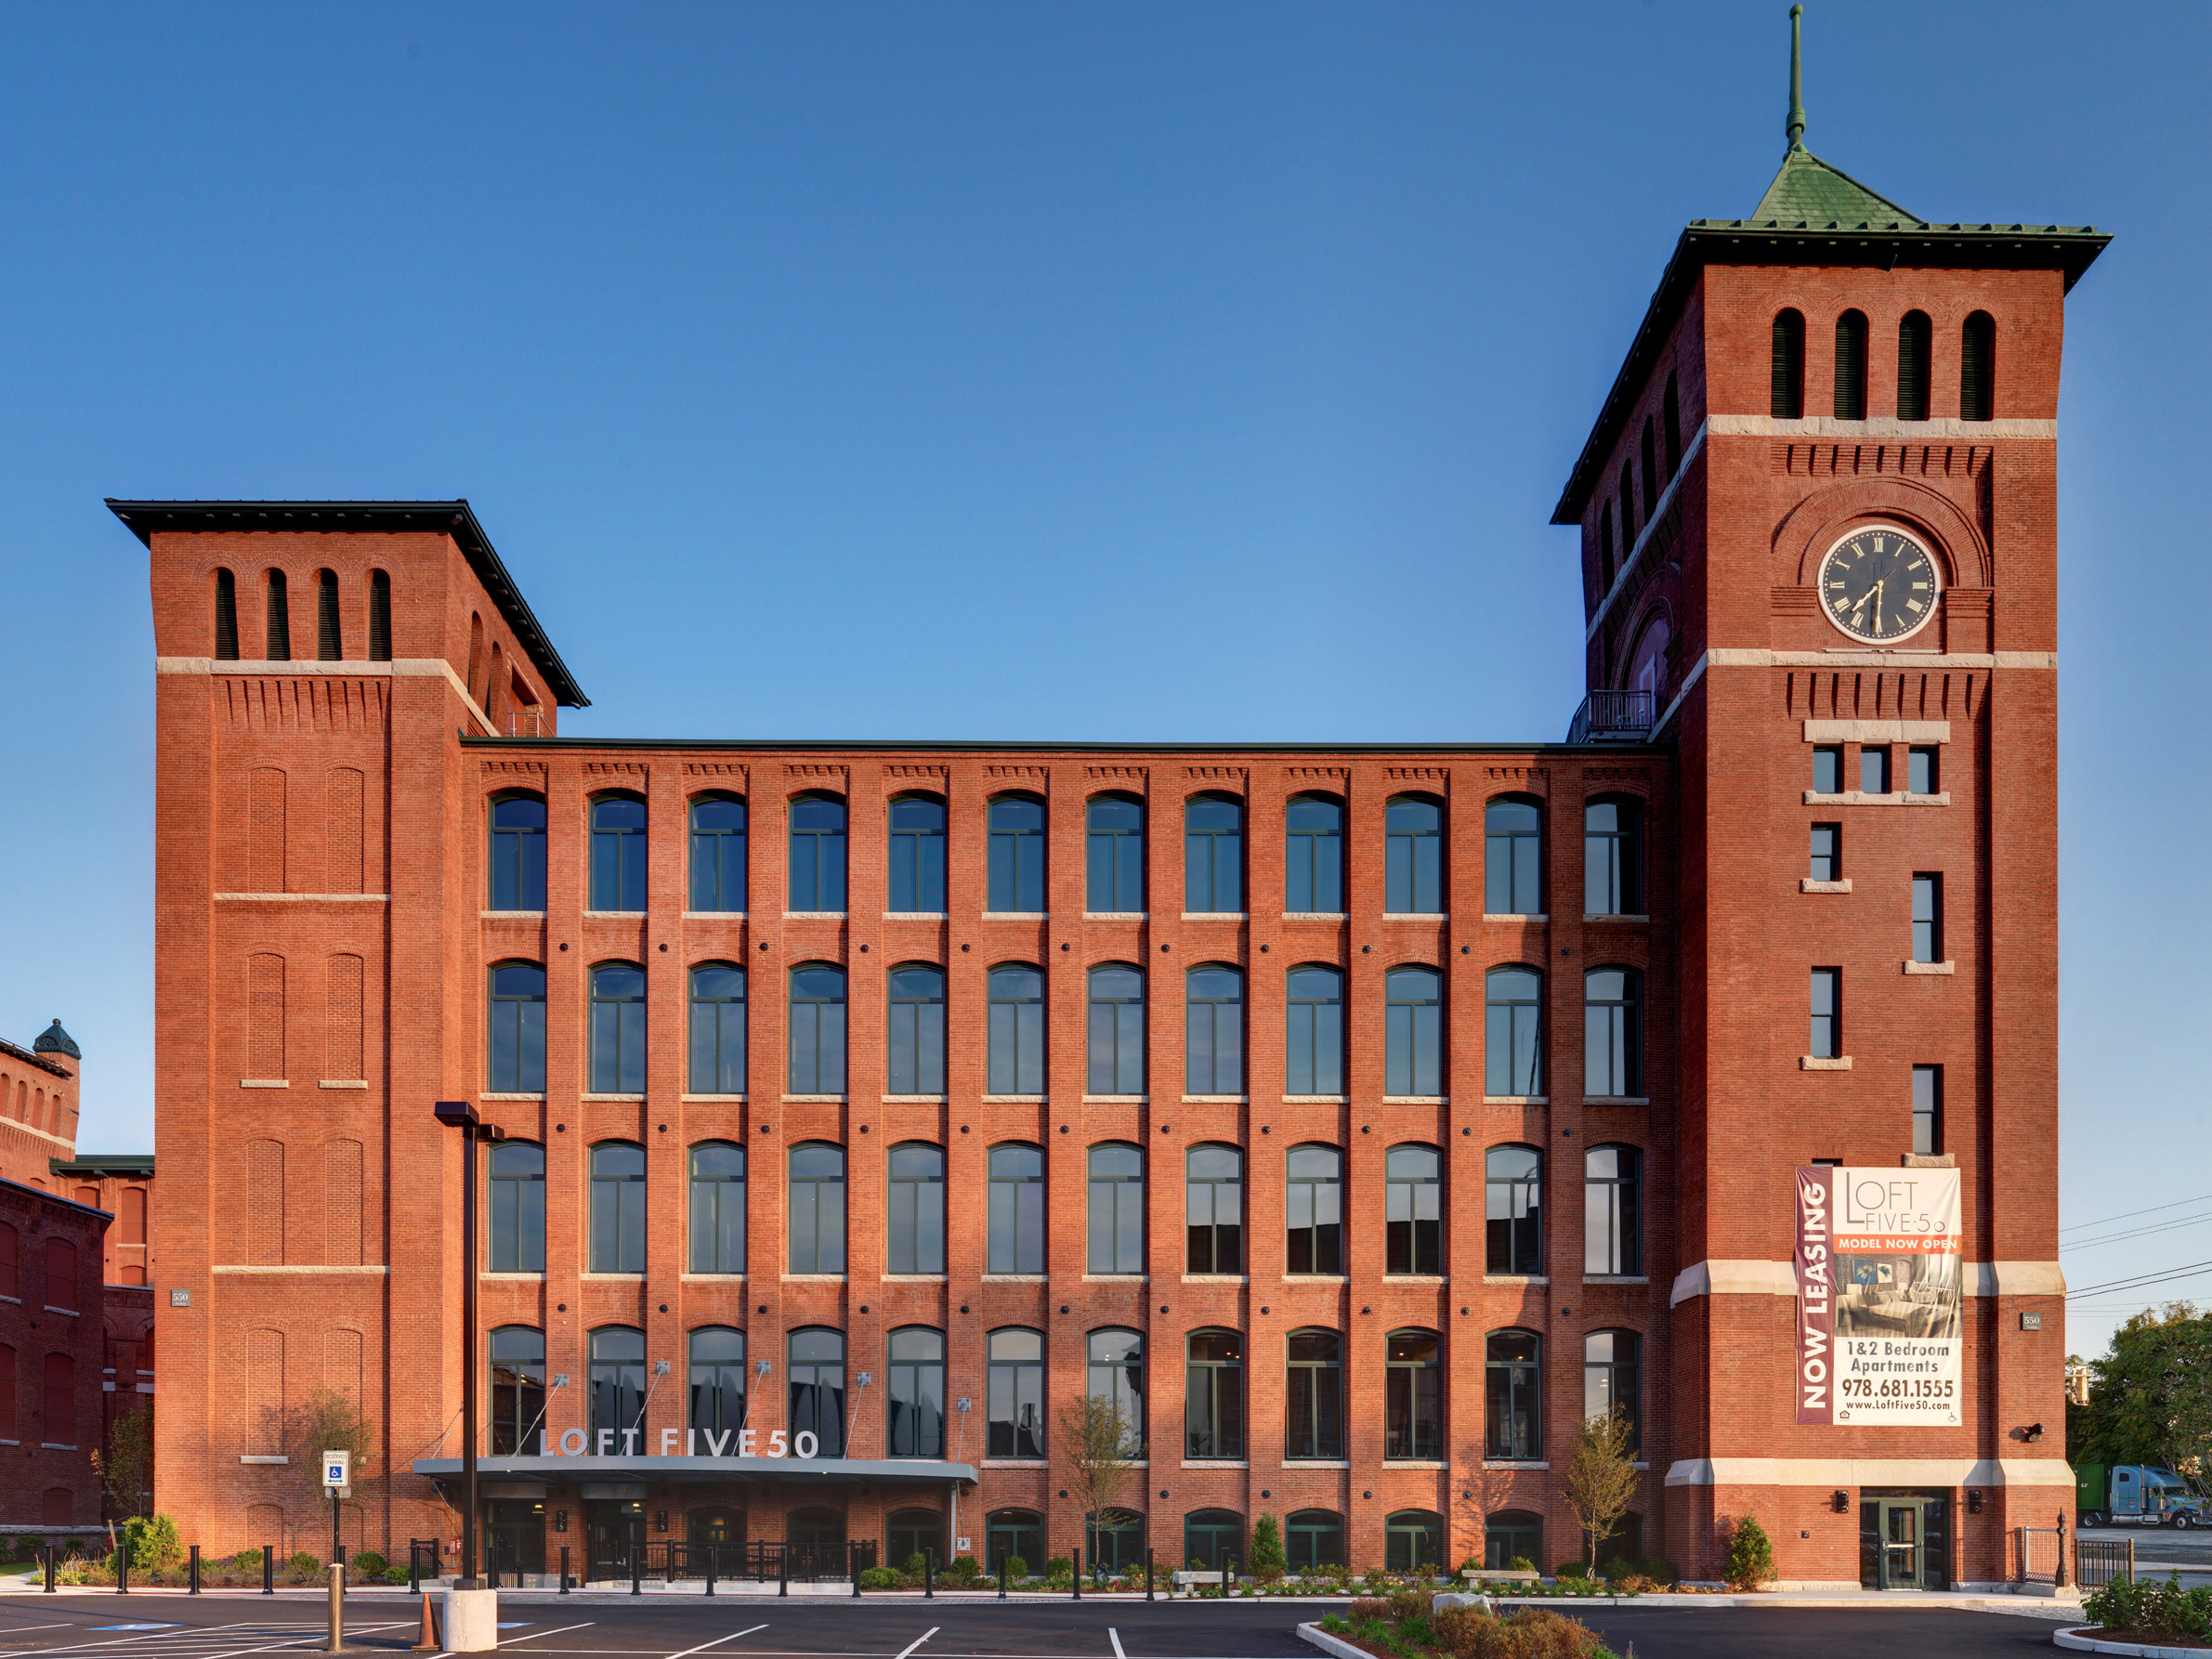 Massachusetts' mill buildings, a legacy of our industrial past, are well-suited for 21st century needs.  Recently renovated Loft Five50, Lawrence, MA   [Loft Five50]